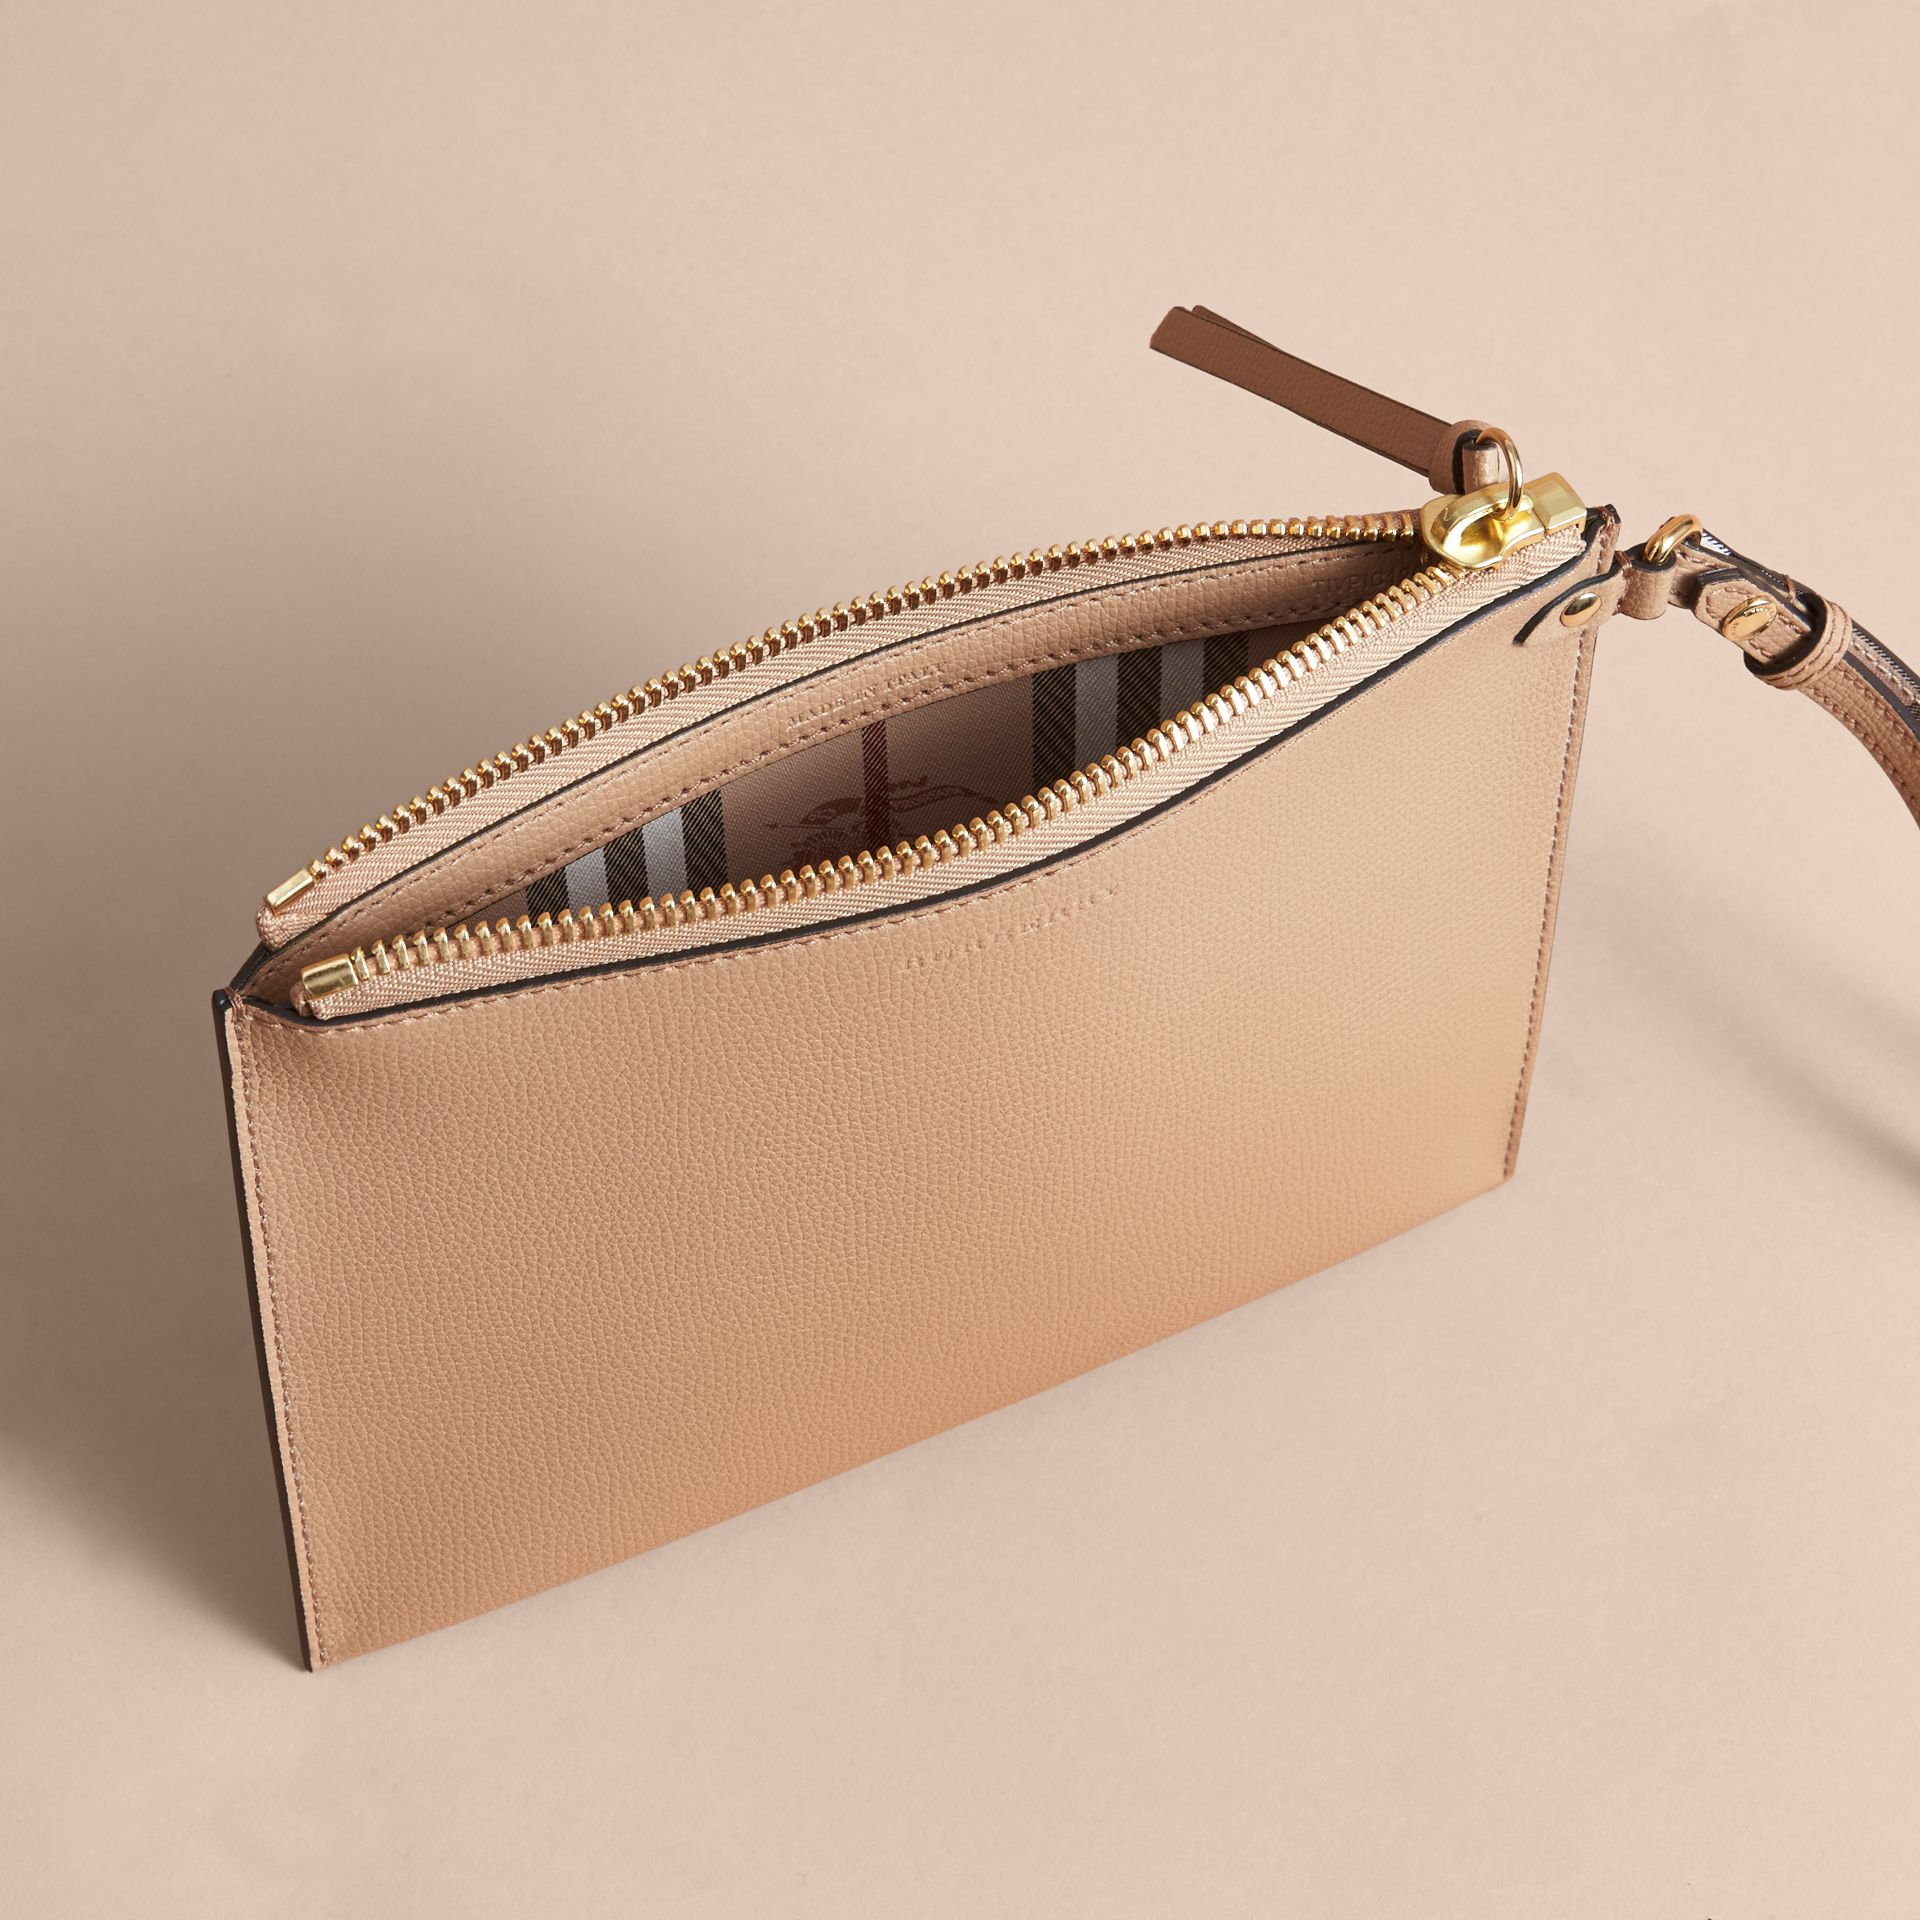 Haymarket Check and Leather Pouch in Mid Camel - Women | Burberry Australia - gallery image 5